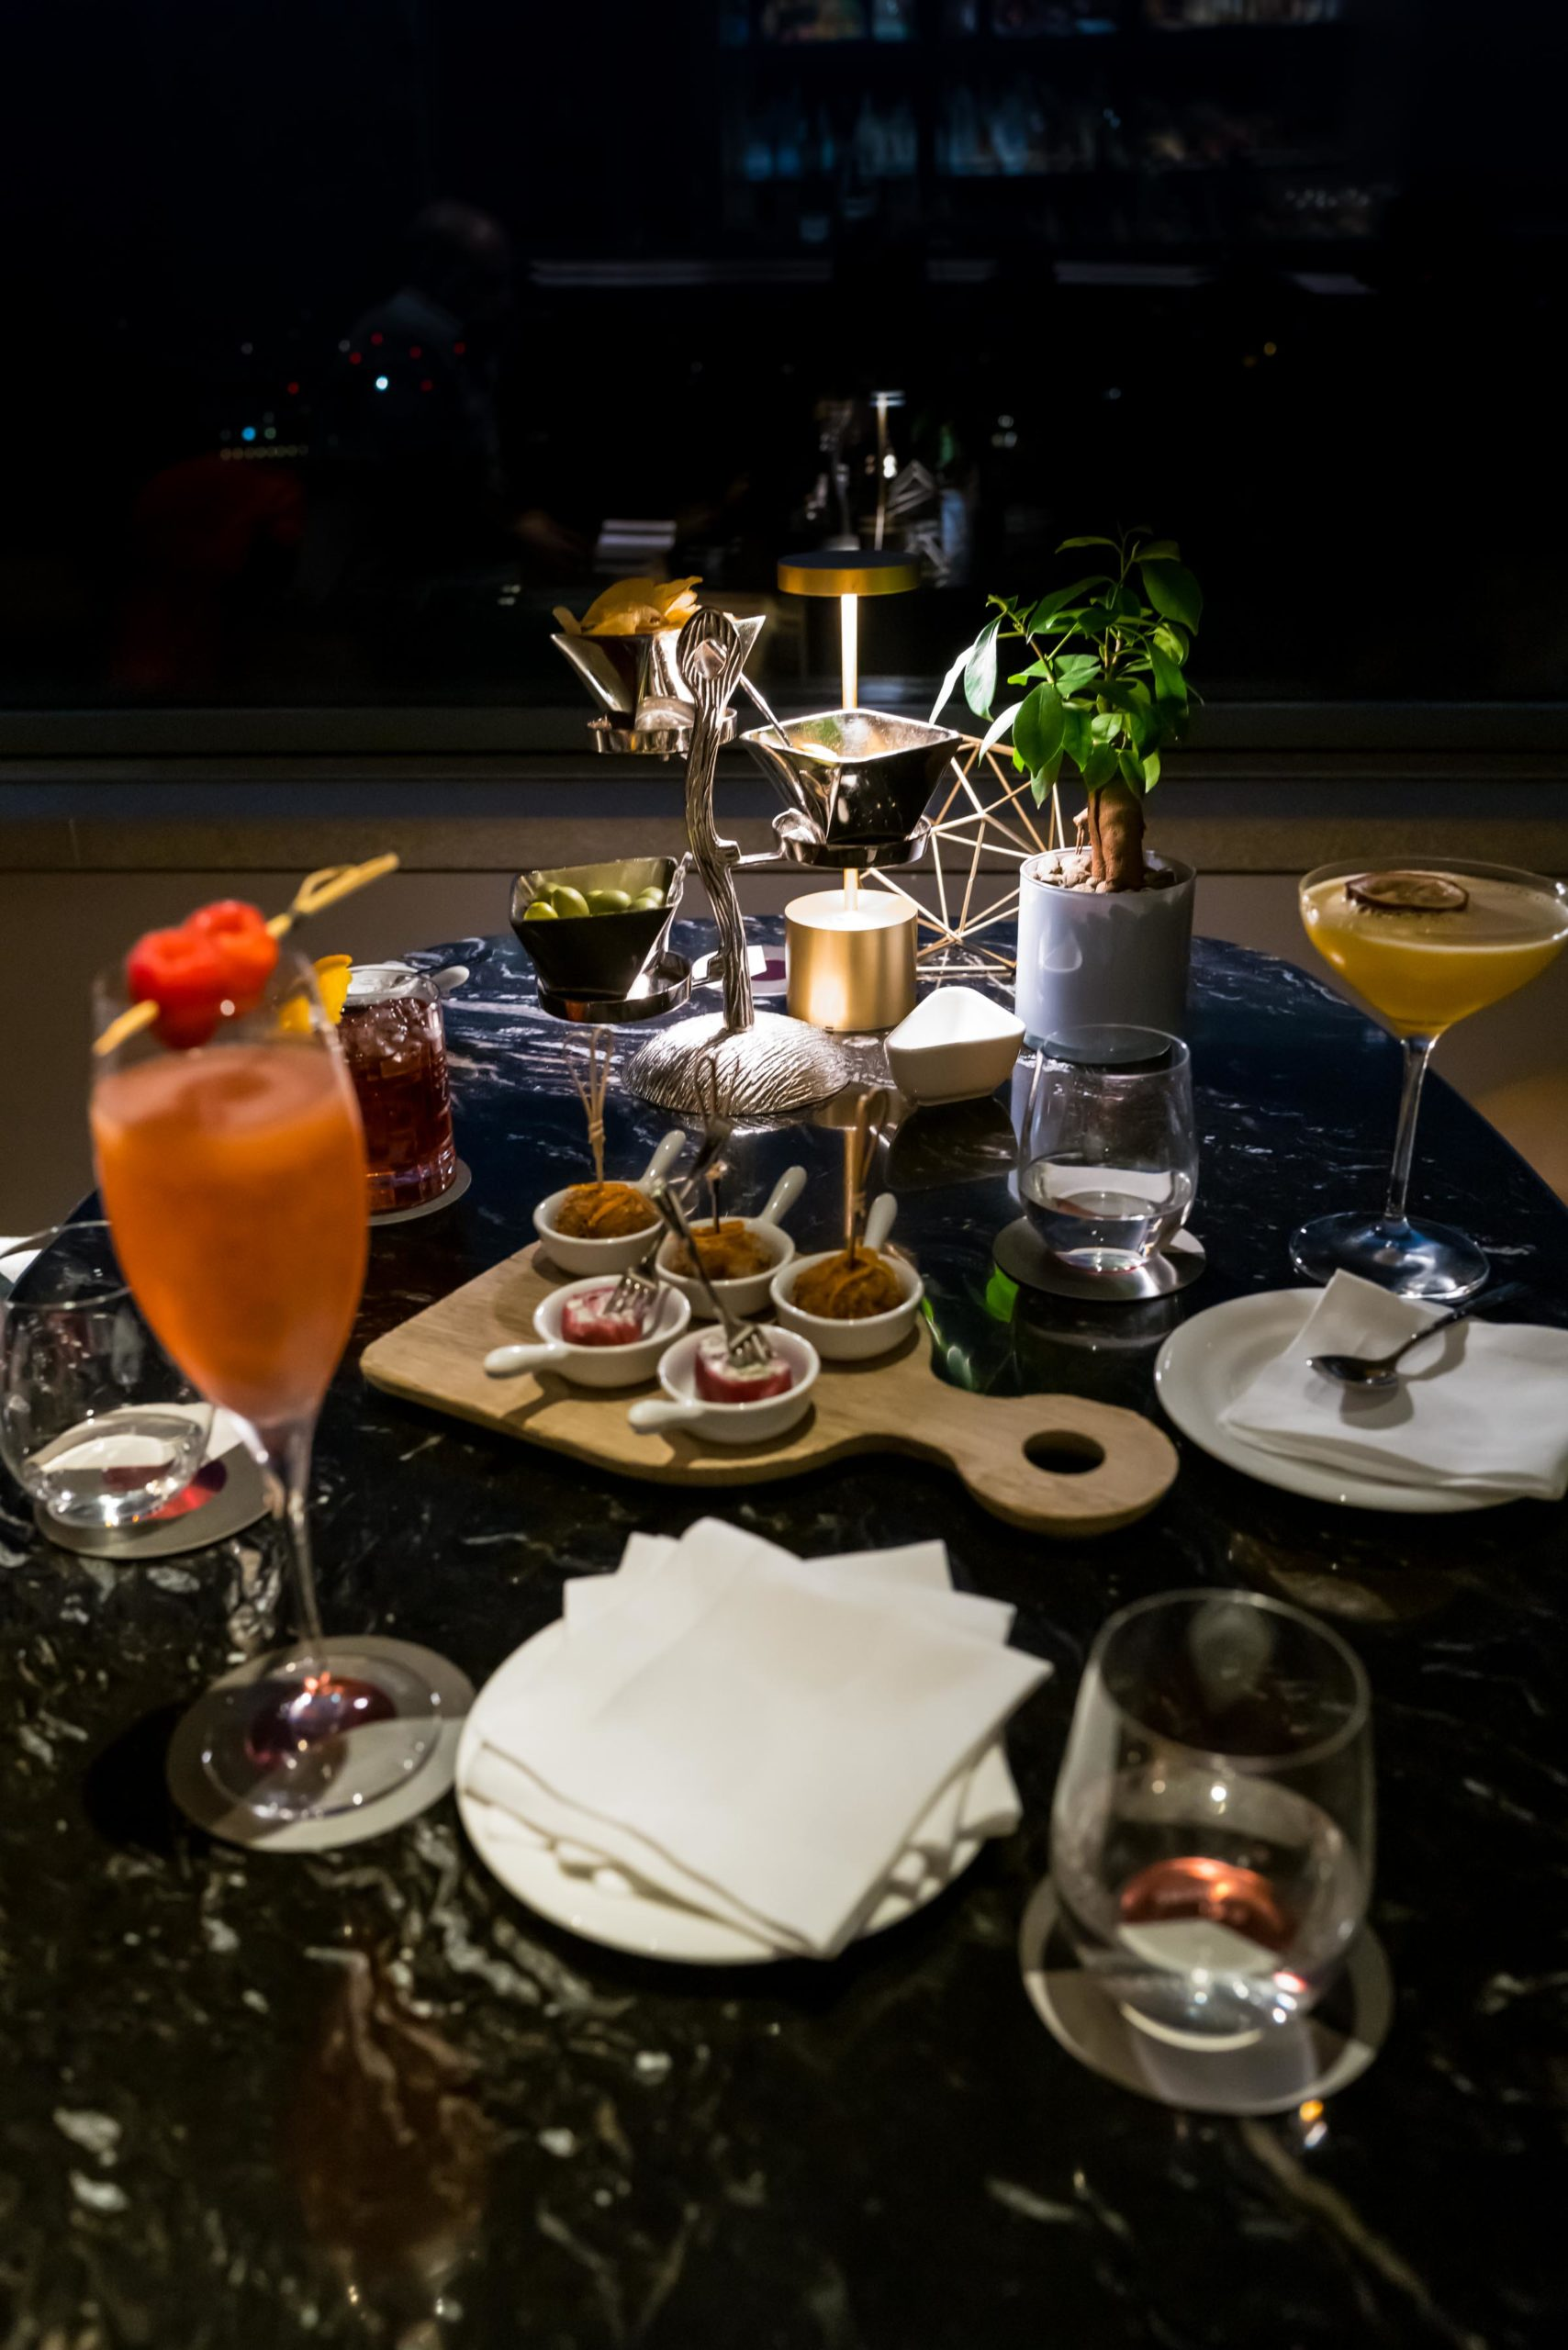 Aperitivo includes delicious cocktails and snacks at the Hotel Eden Rome, The Taste Edit #hotel #rome #italy #bar